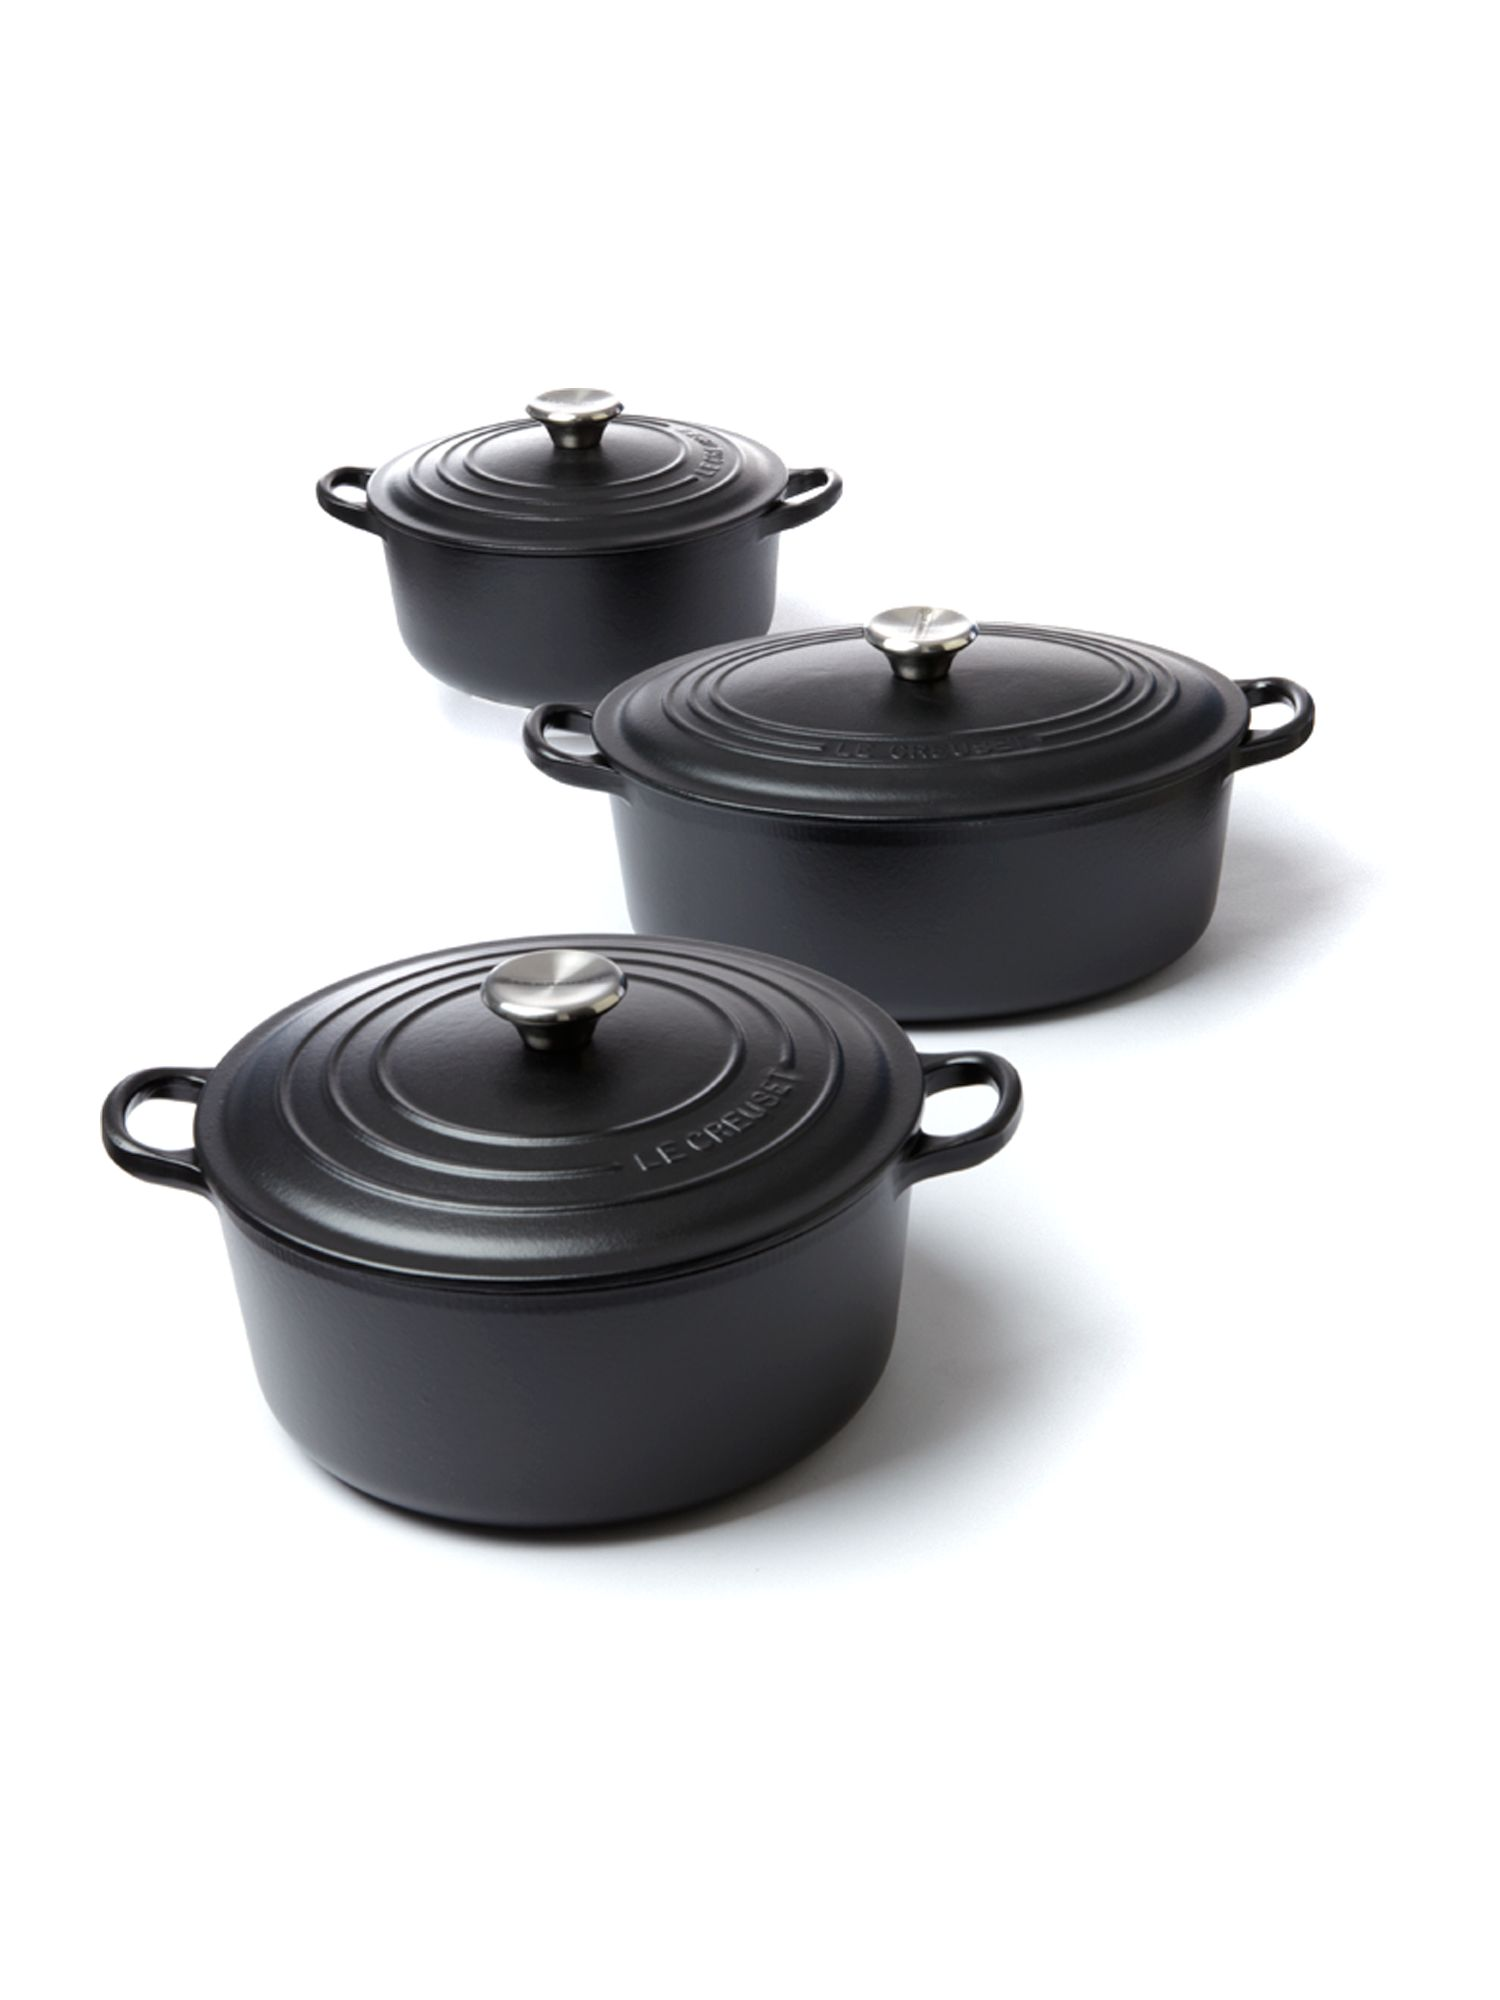 Cast iron cookware in black satin